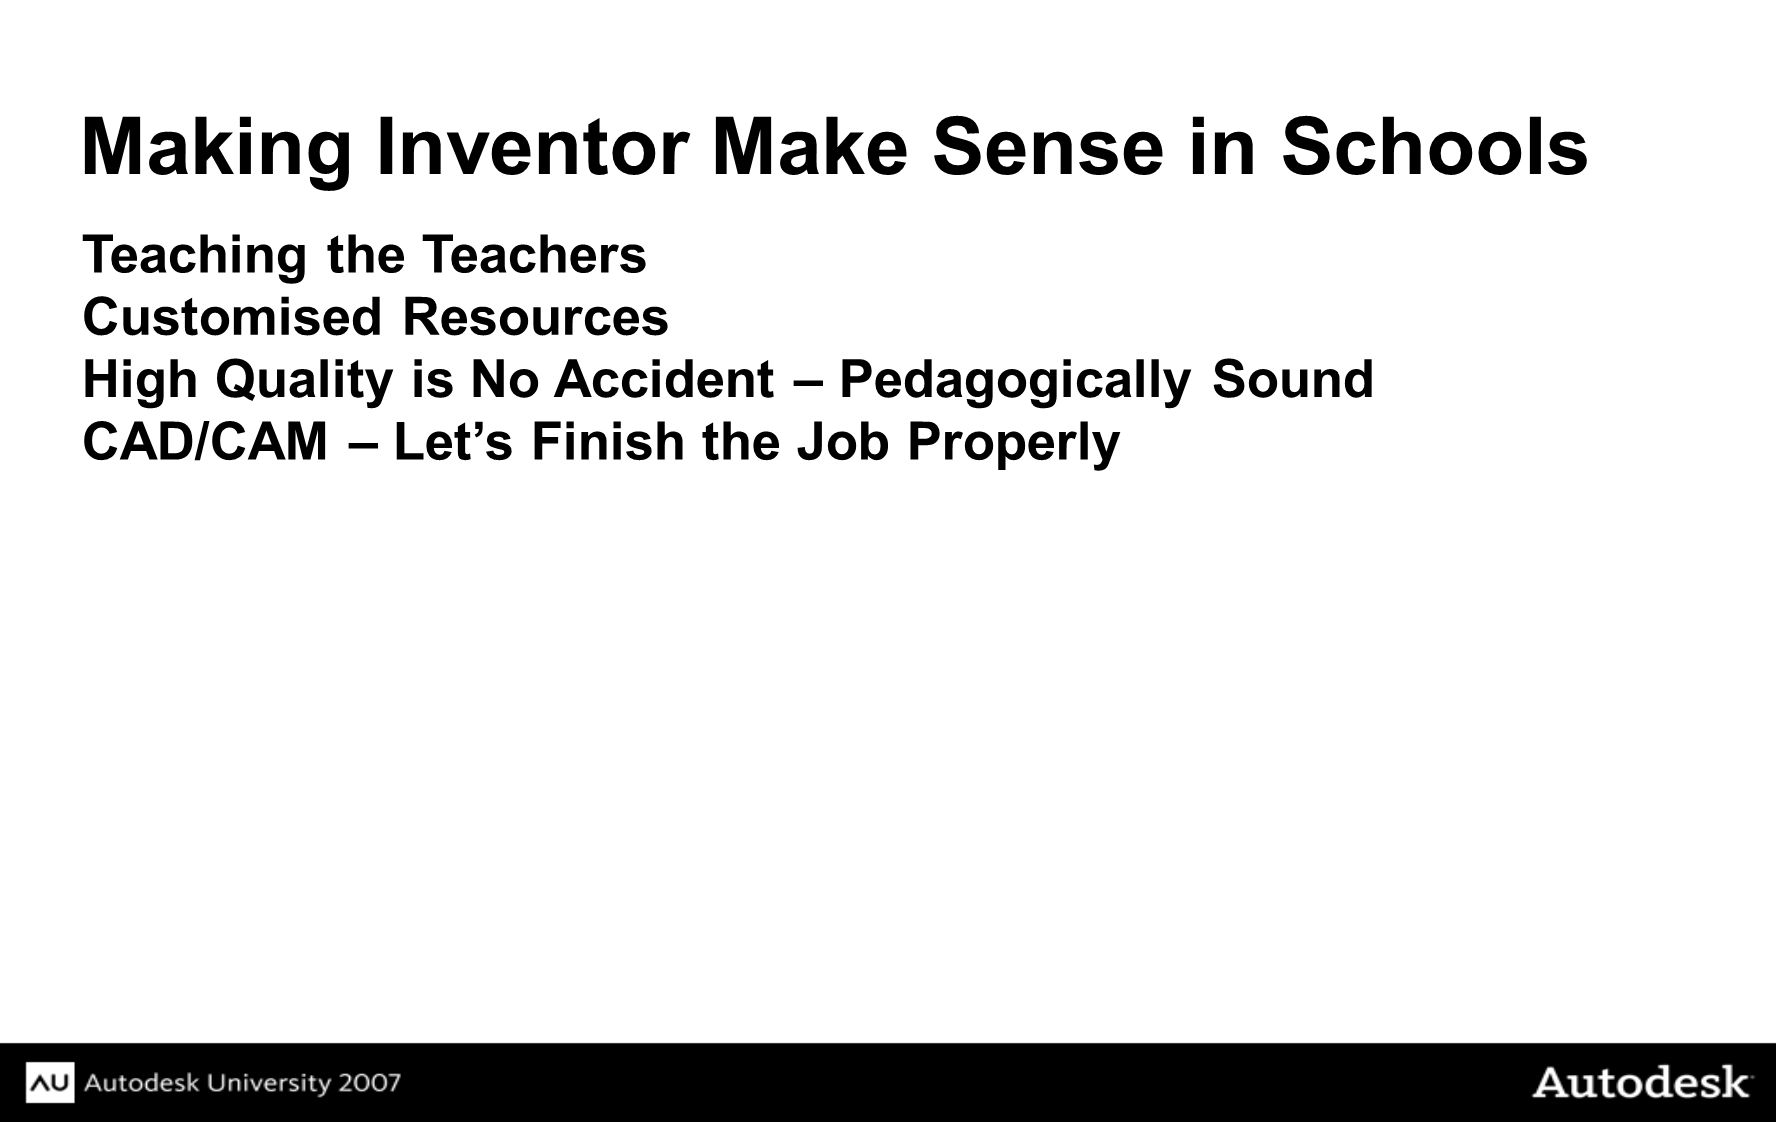 Teaching the Teachers Making Inventor Make Sense in Schools Customised Resources High Quality is No Accident – Pedagogically Sound CAD/CAM – Lets Finish the Job Properly